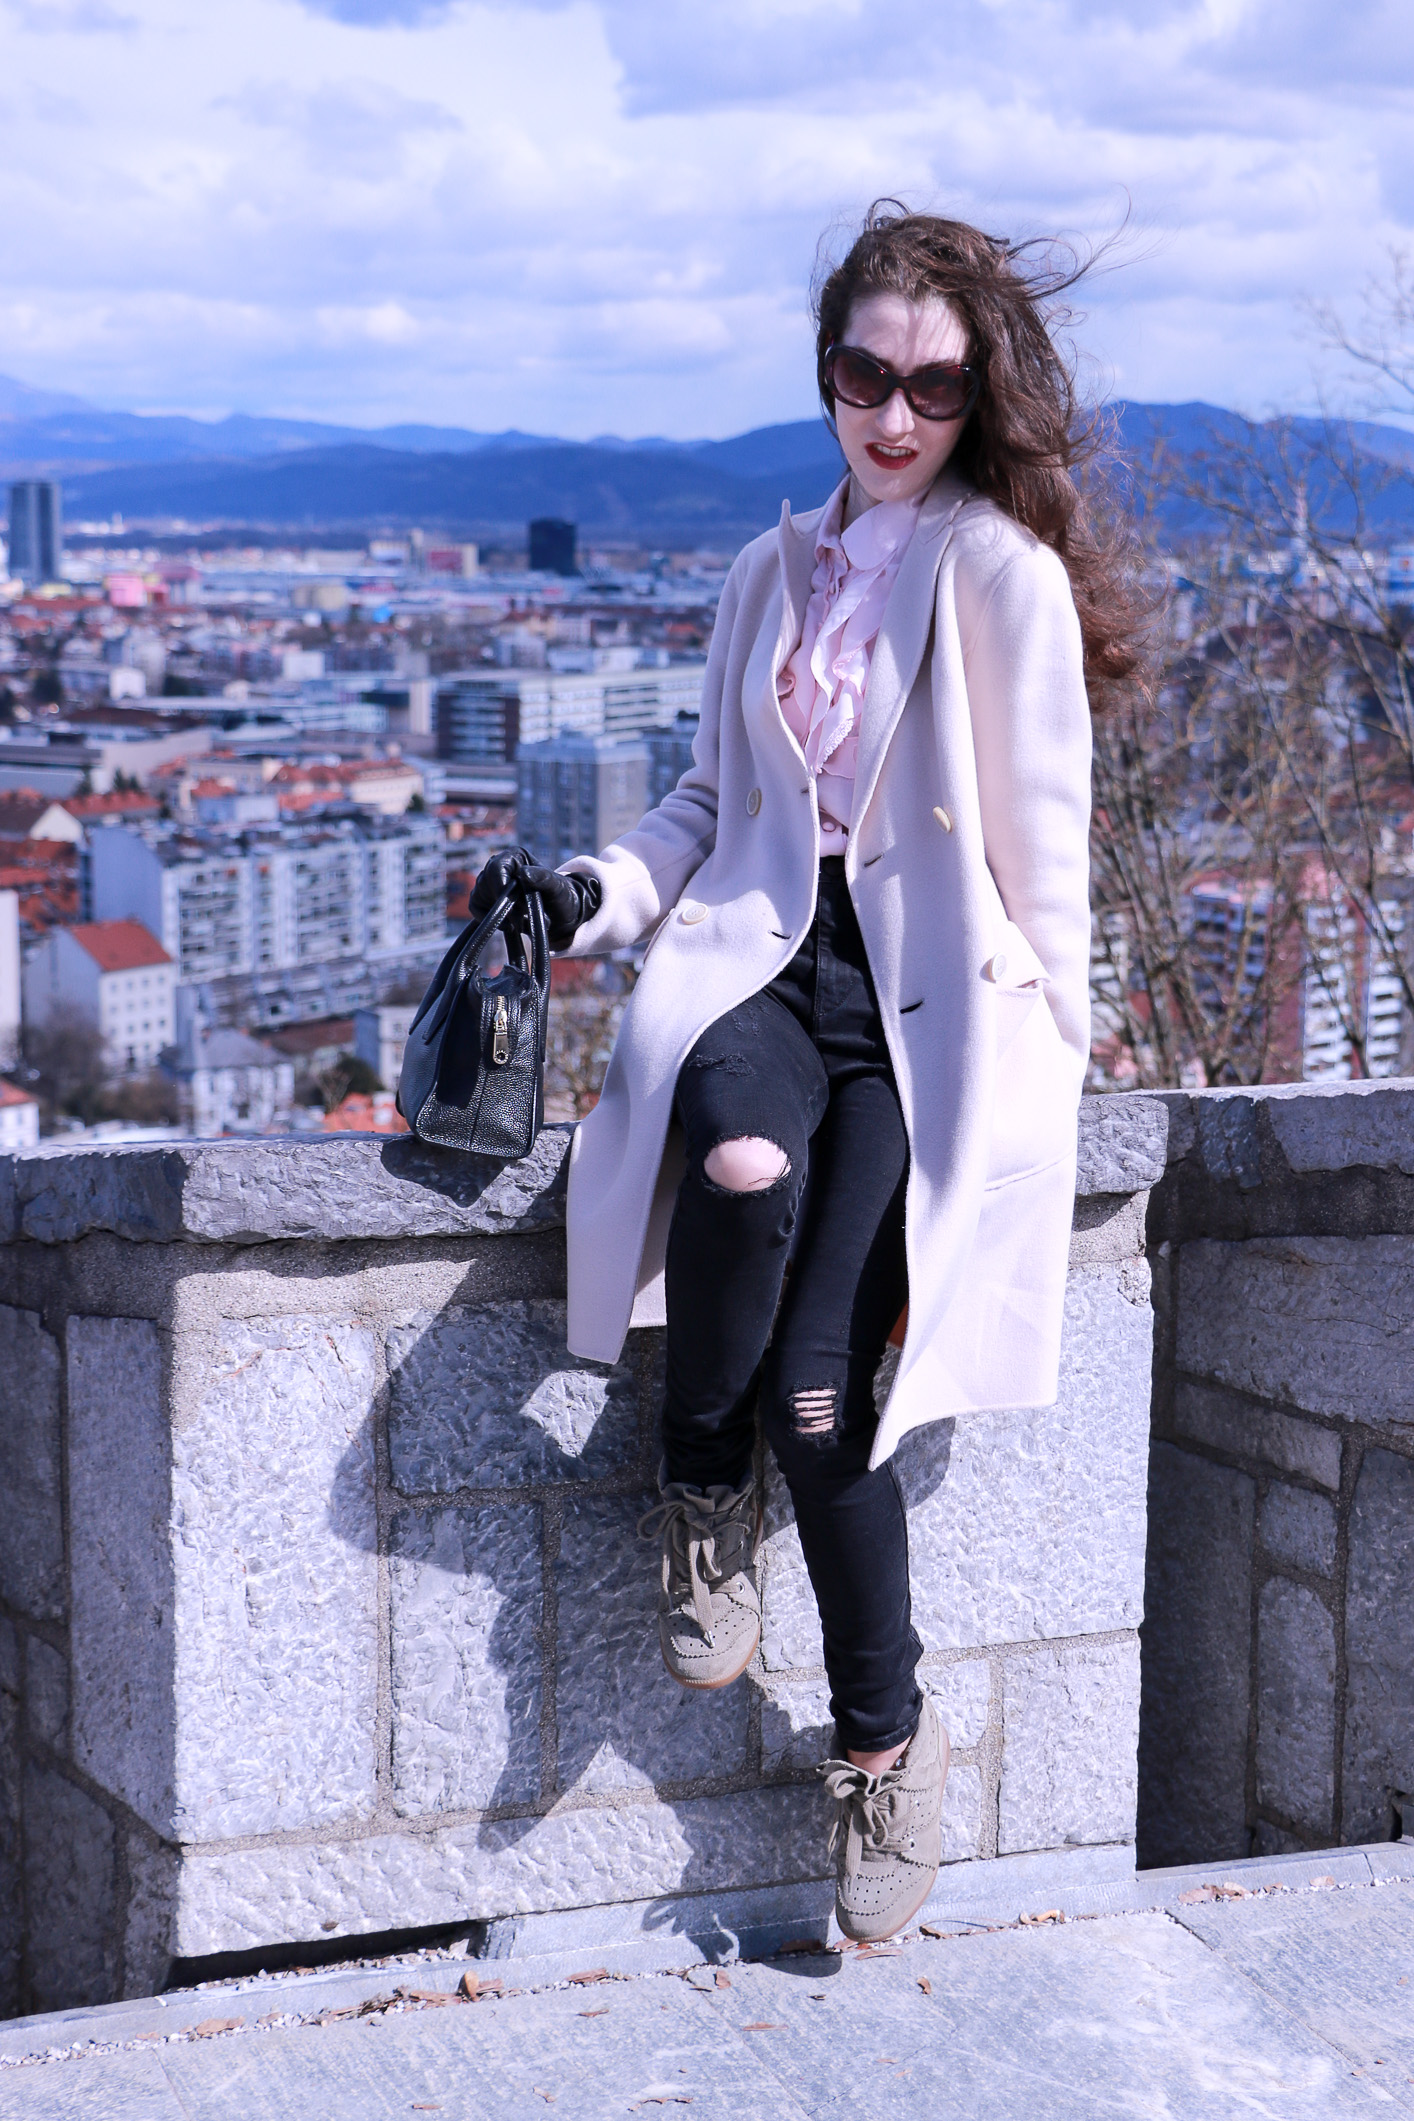 Fashion blogger Veronika Lipar of Brunette From Wall Street sharing her casual spring fashionable outfit